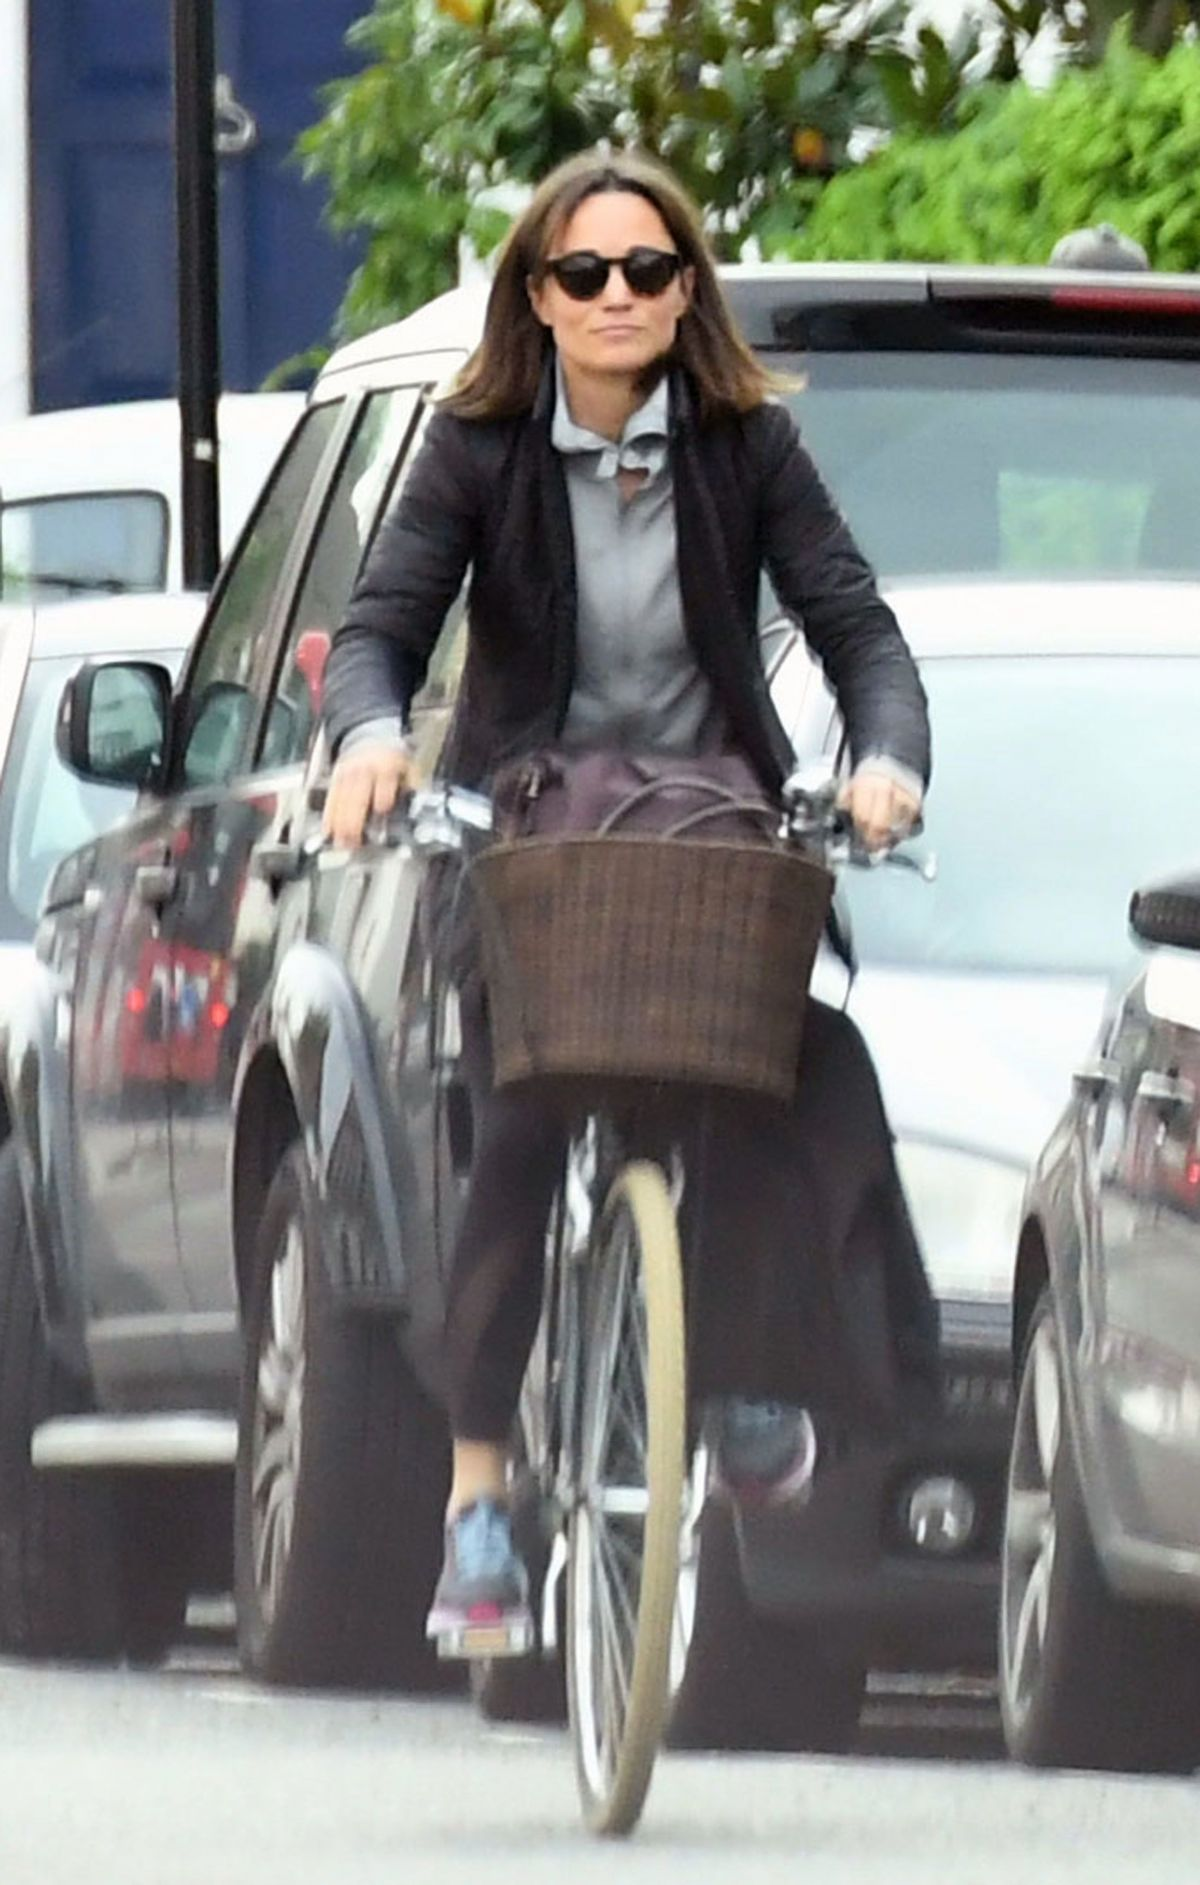 pippa-middleton-out-riding-a-bicycle-in-london-11-09-2017-18.jpg